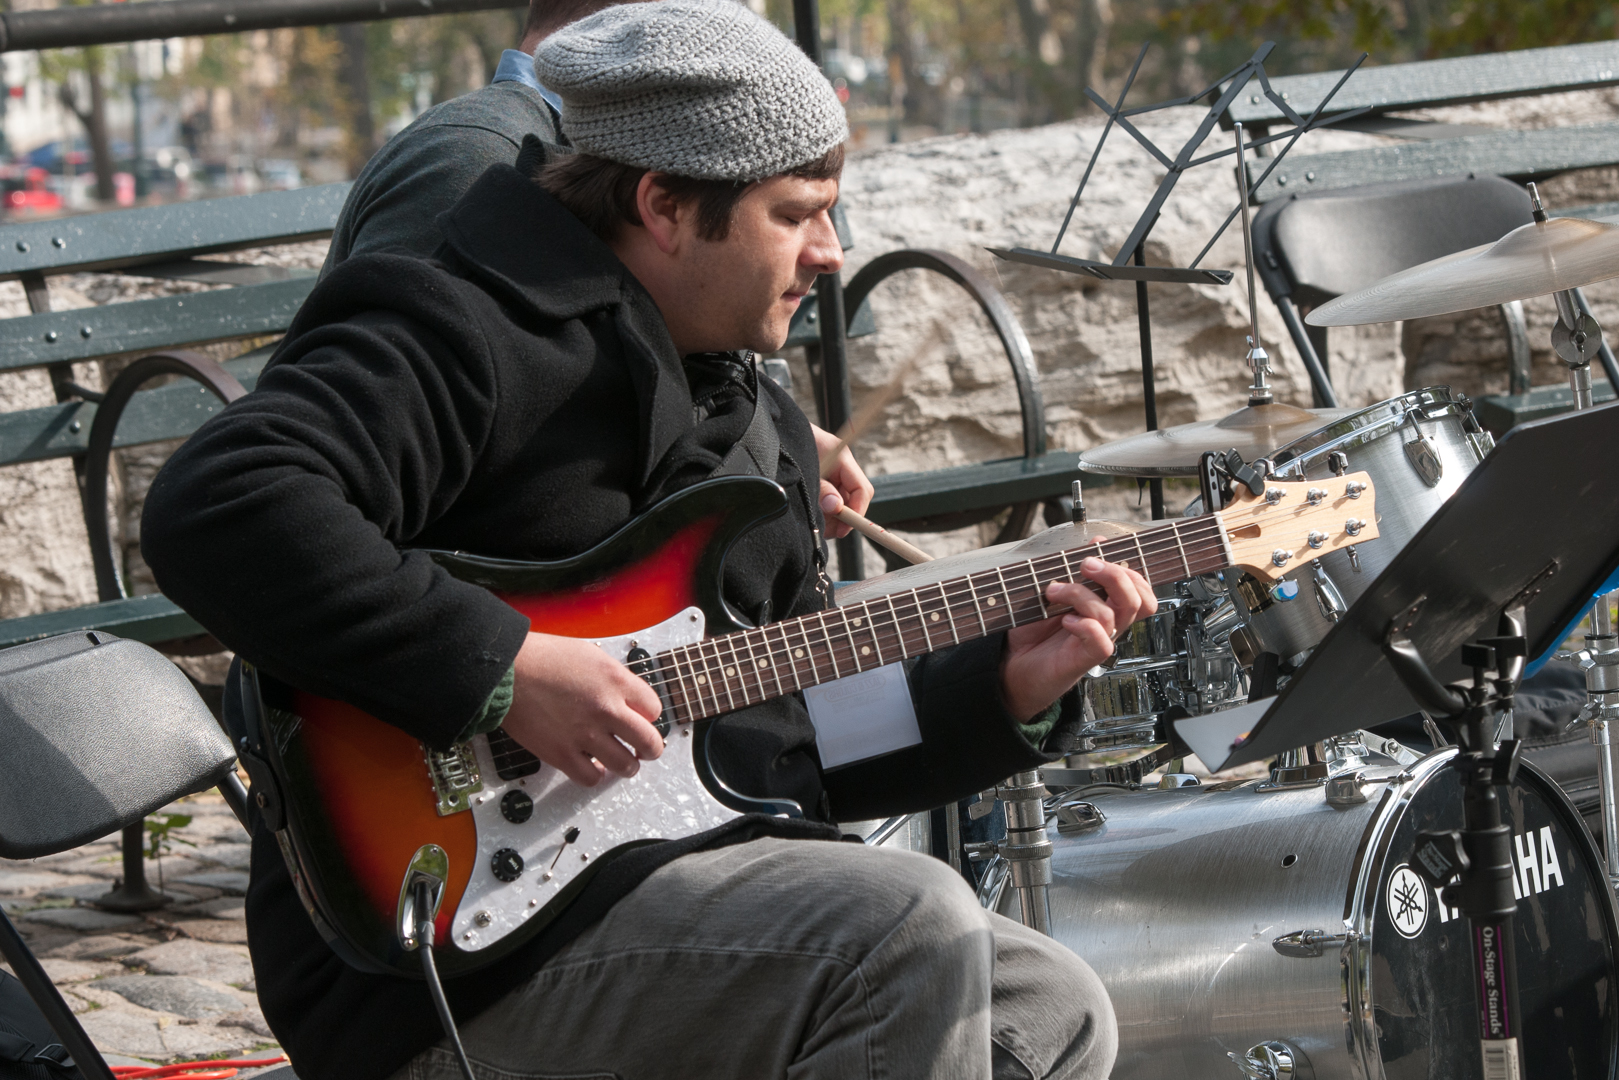 Jesse Lewis with the Chris Dingman Quartet at Jazz and Colors in Central Park